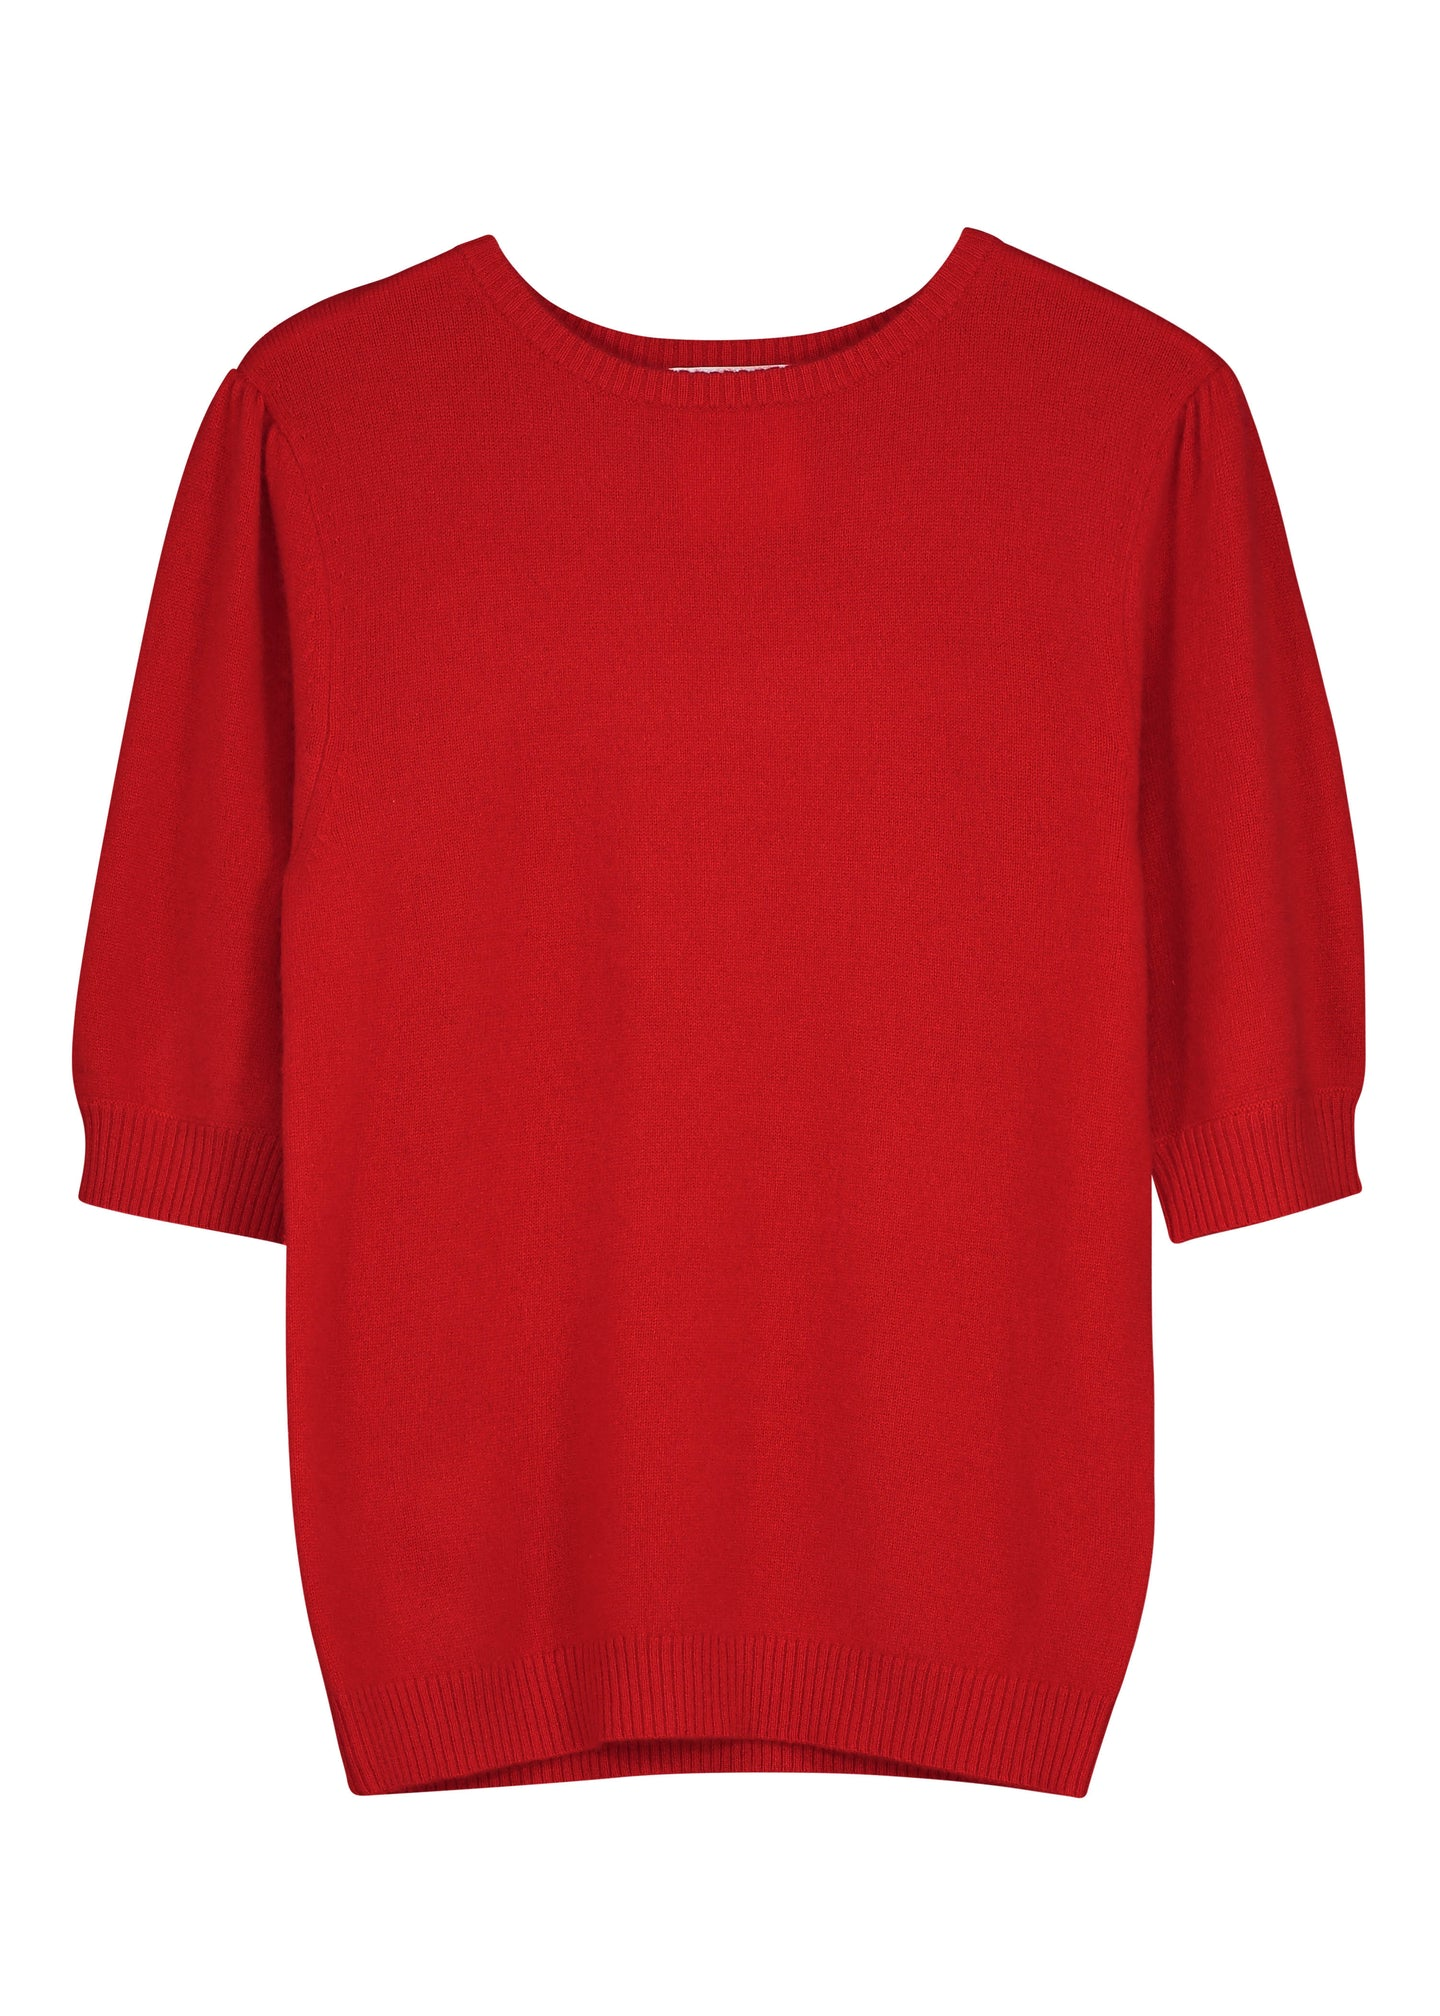 Bonnie Cashmere Knit - Love That Red